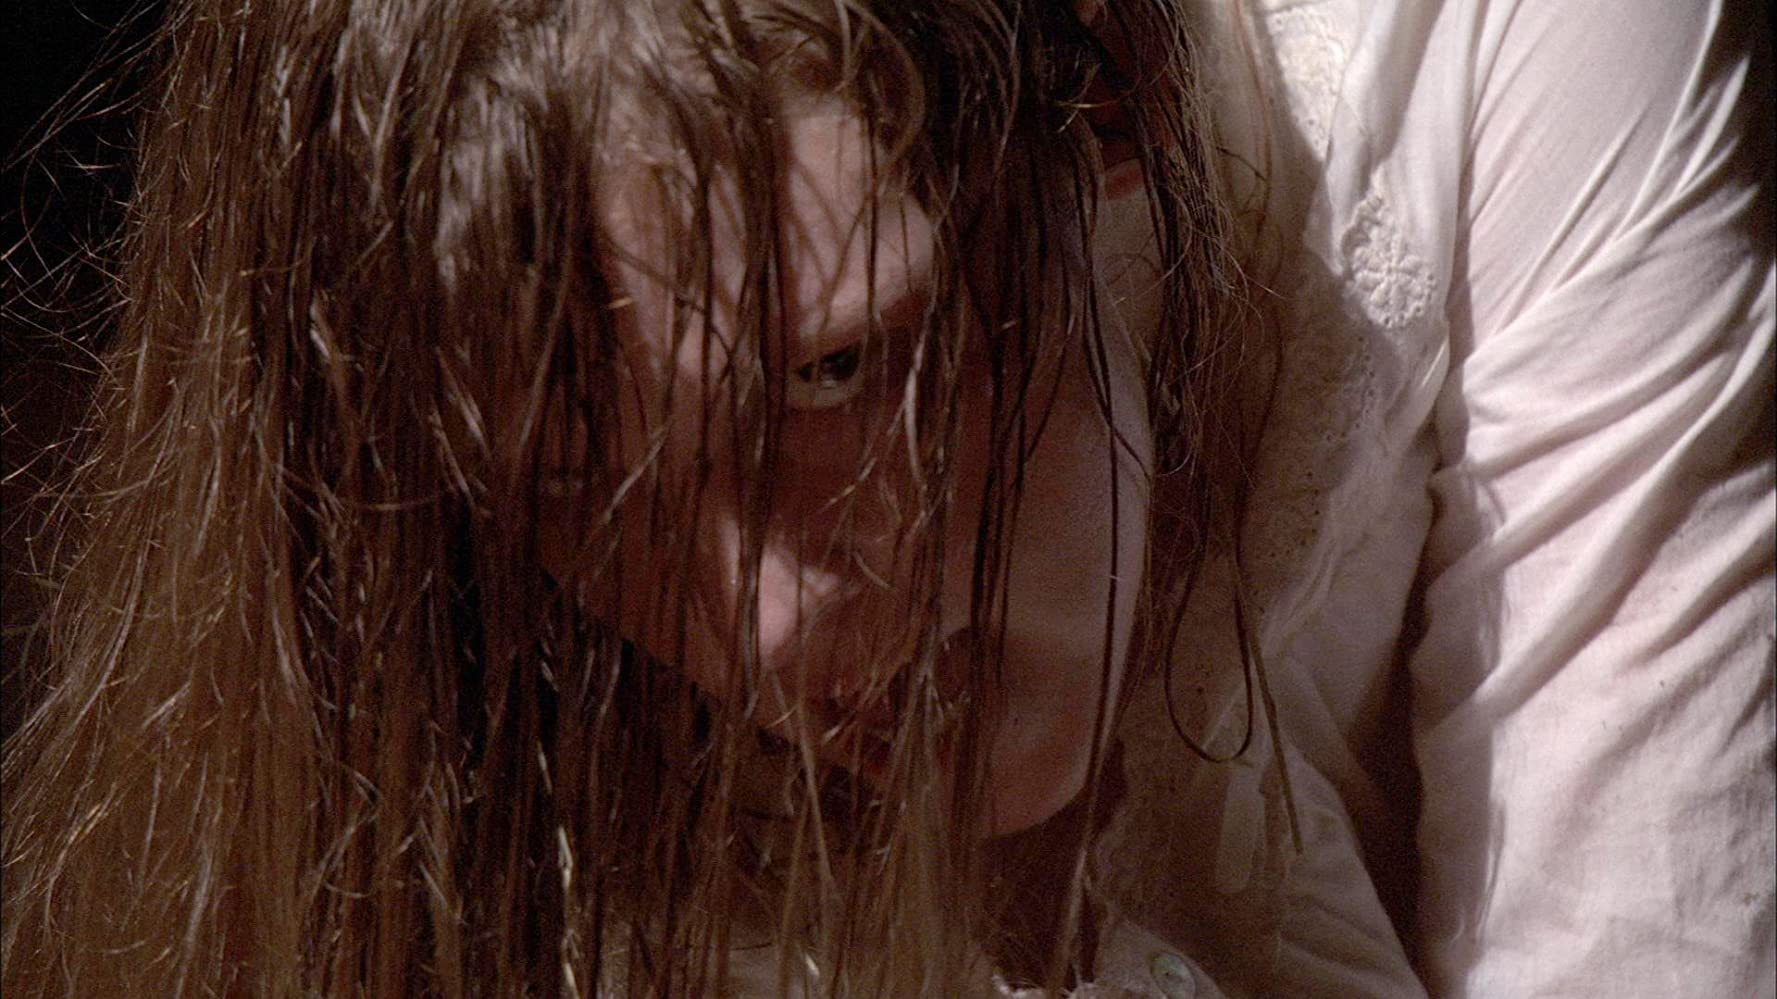 Ashley Bell in The Last Exorcism (2010)